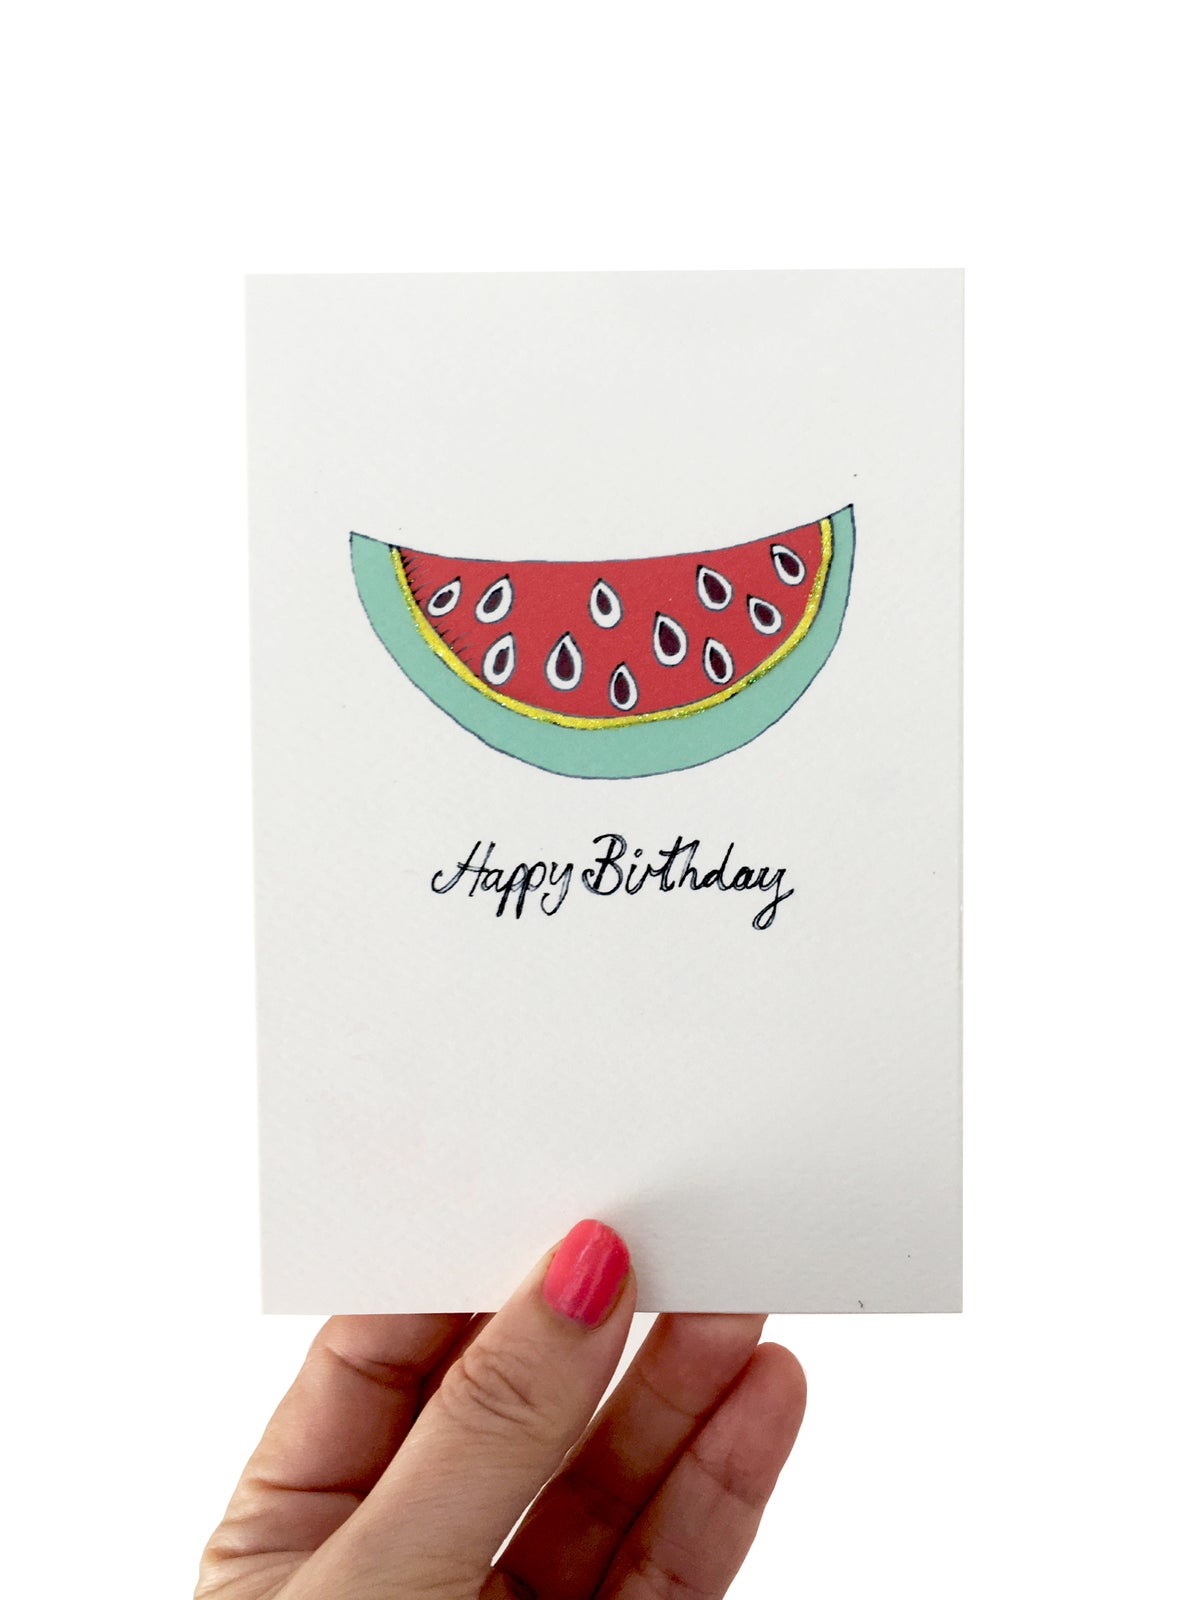 Watermelon Dream Birthday Card